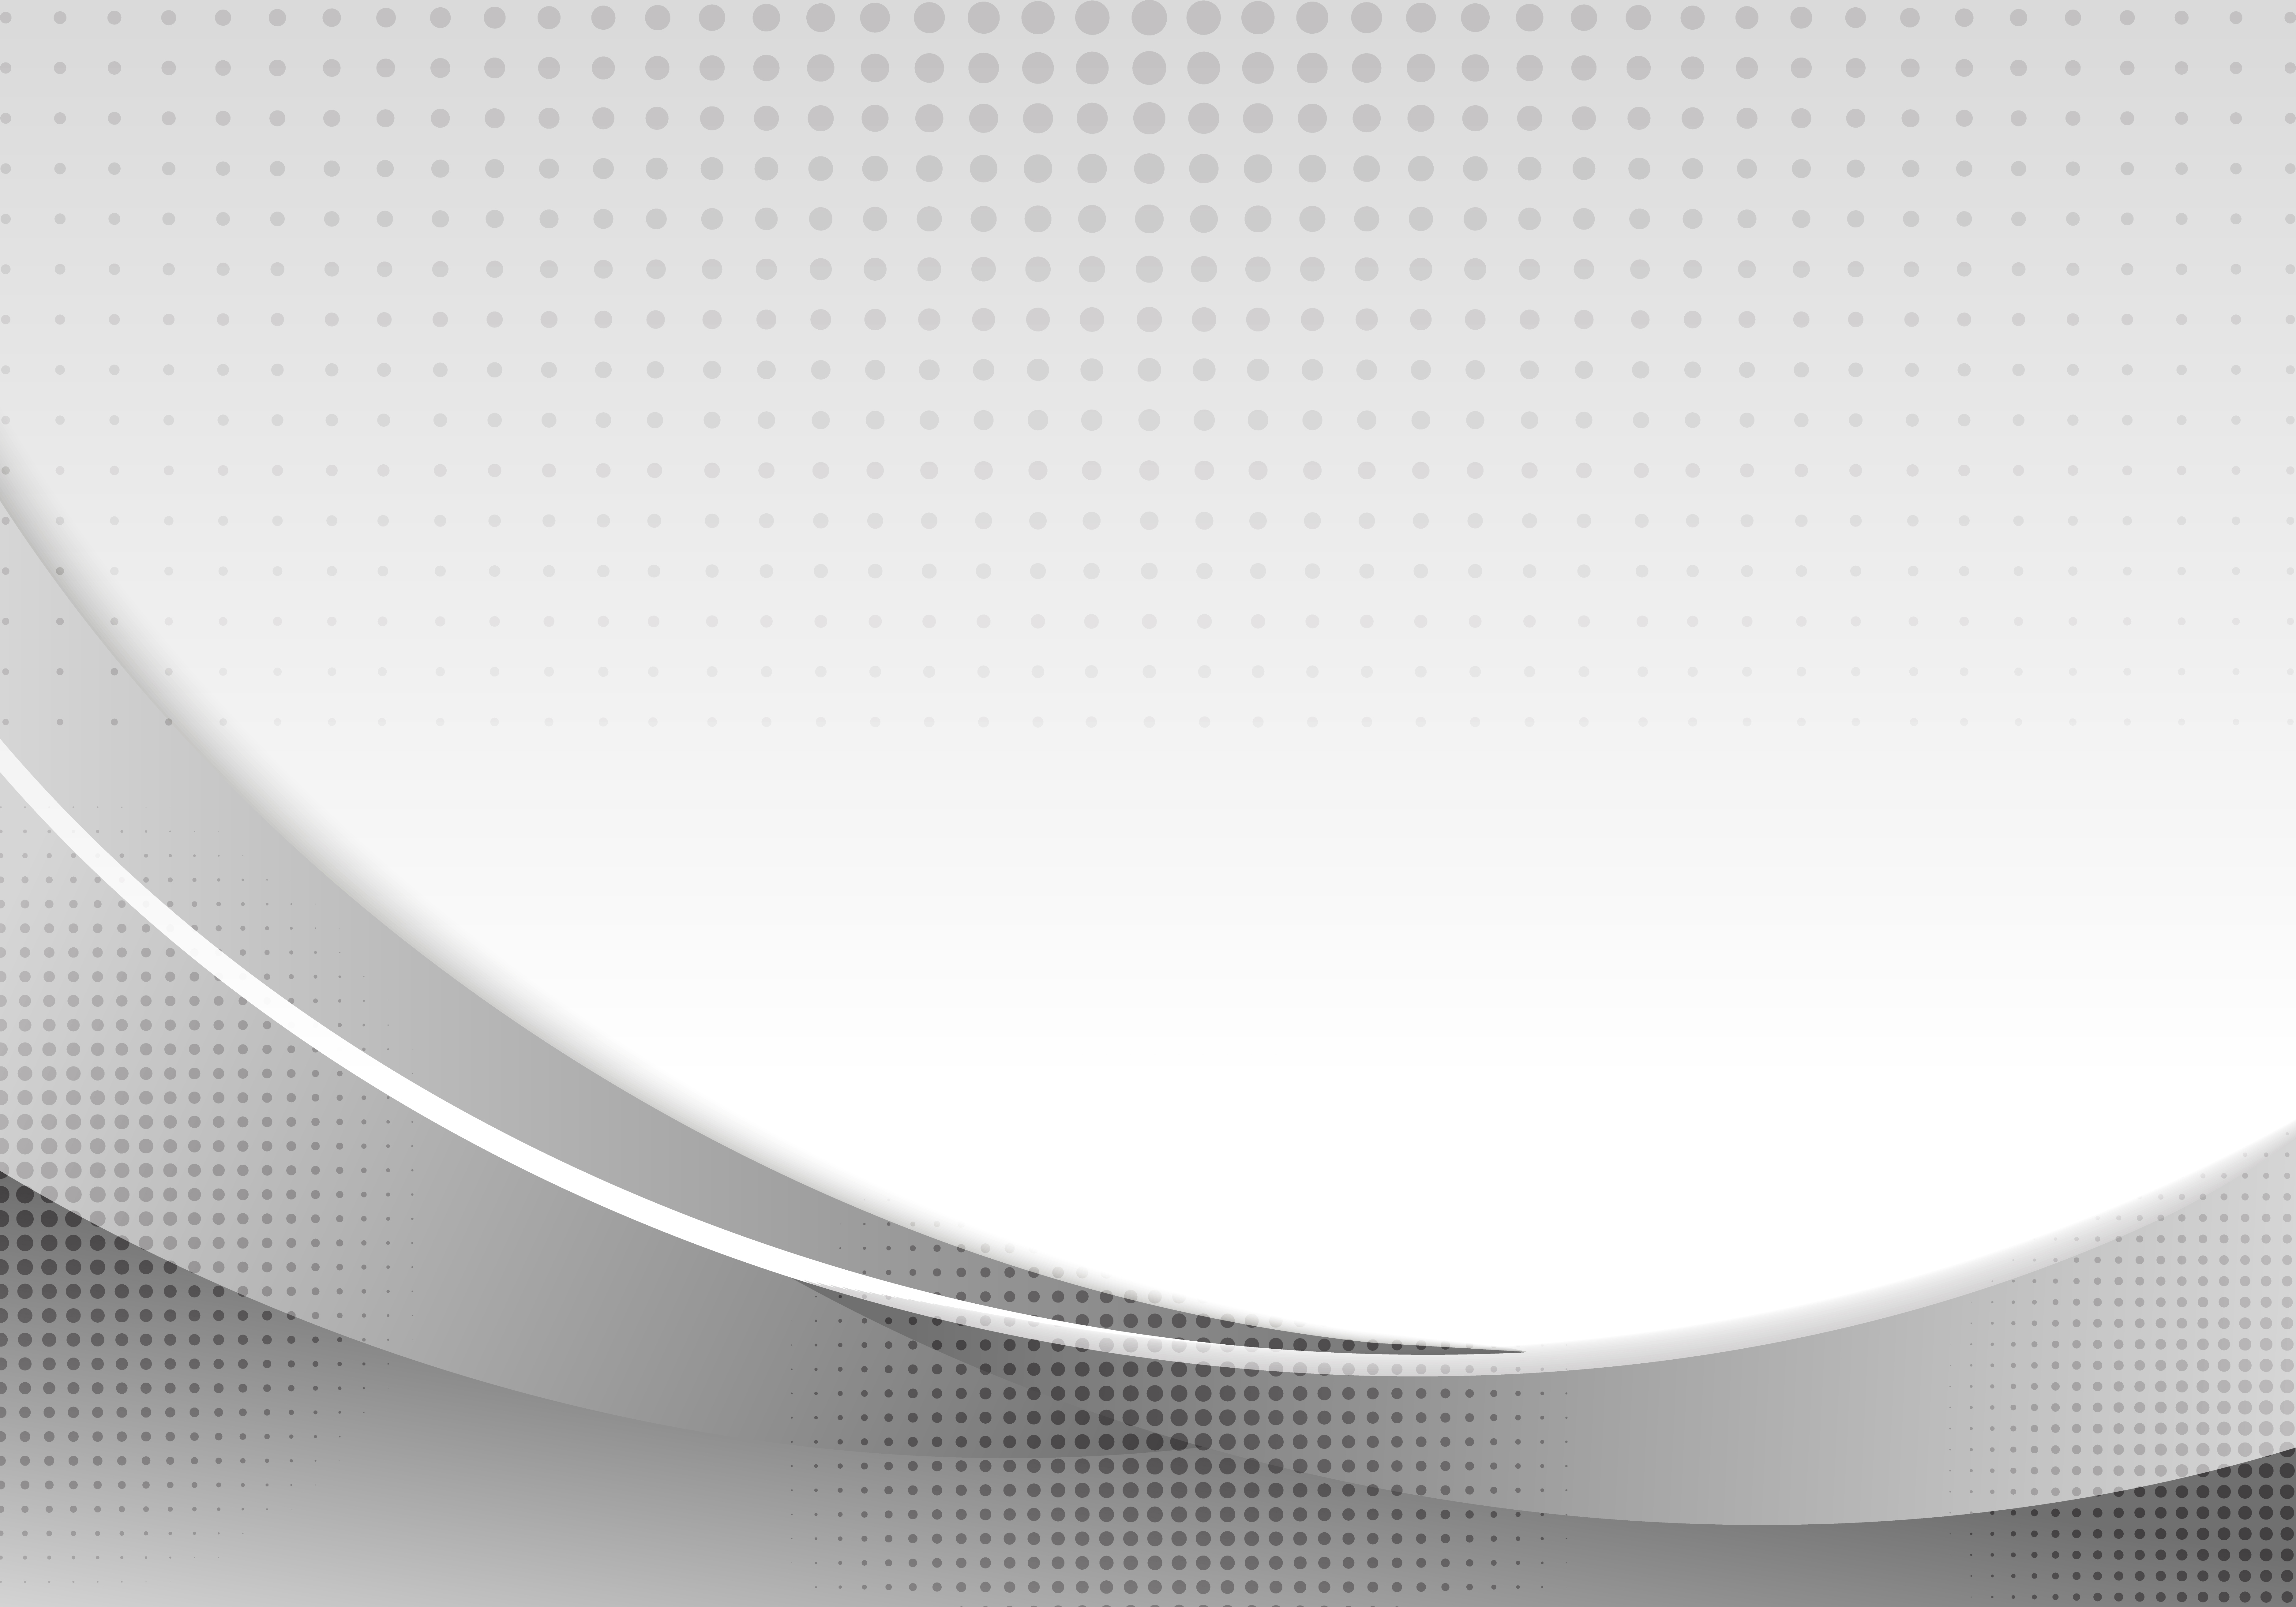 Vector Illustration Web Designs: Abstract Gray Waves Or Curved Professional Business Design